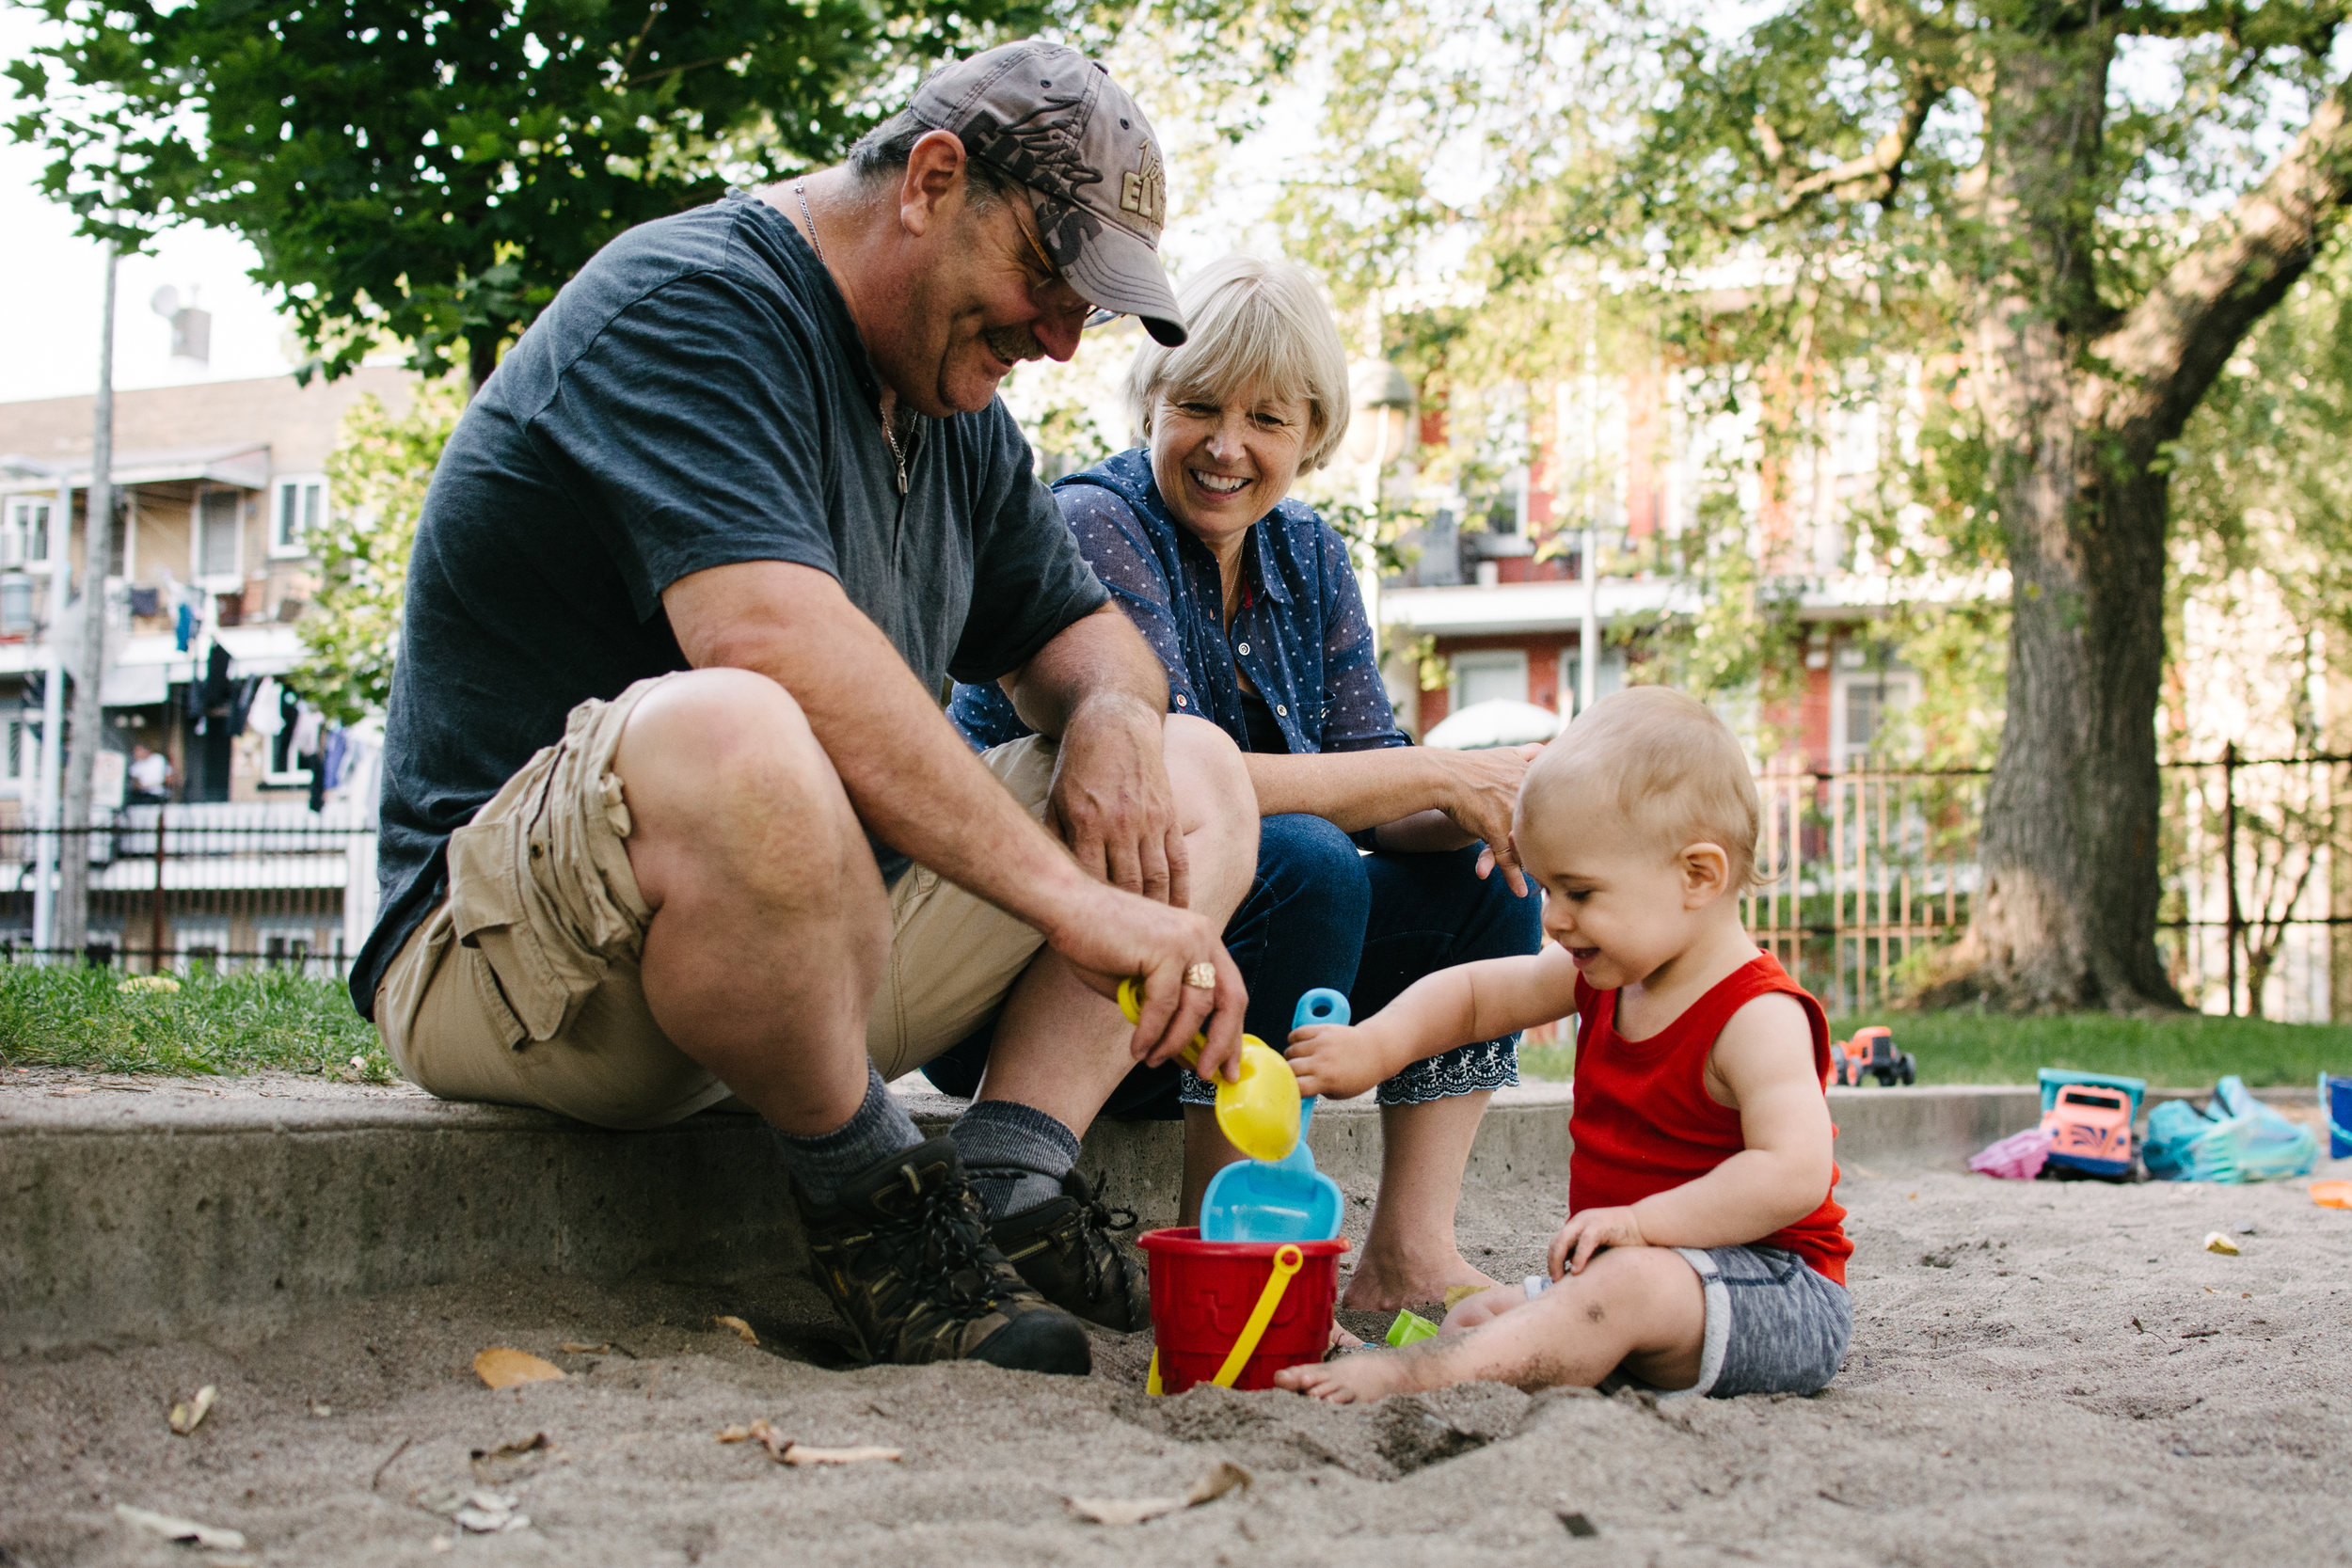 Mini-seance-photo-enfant-avec-ses-grands-parents-ruelle-parc-montreal-photographe-famille-10.jpg